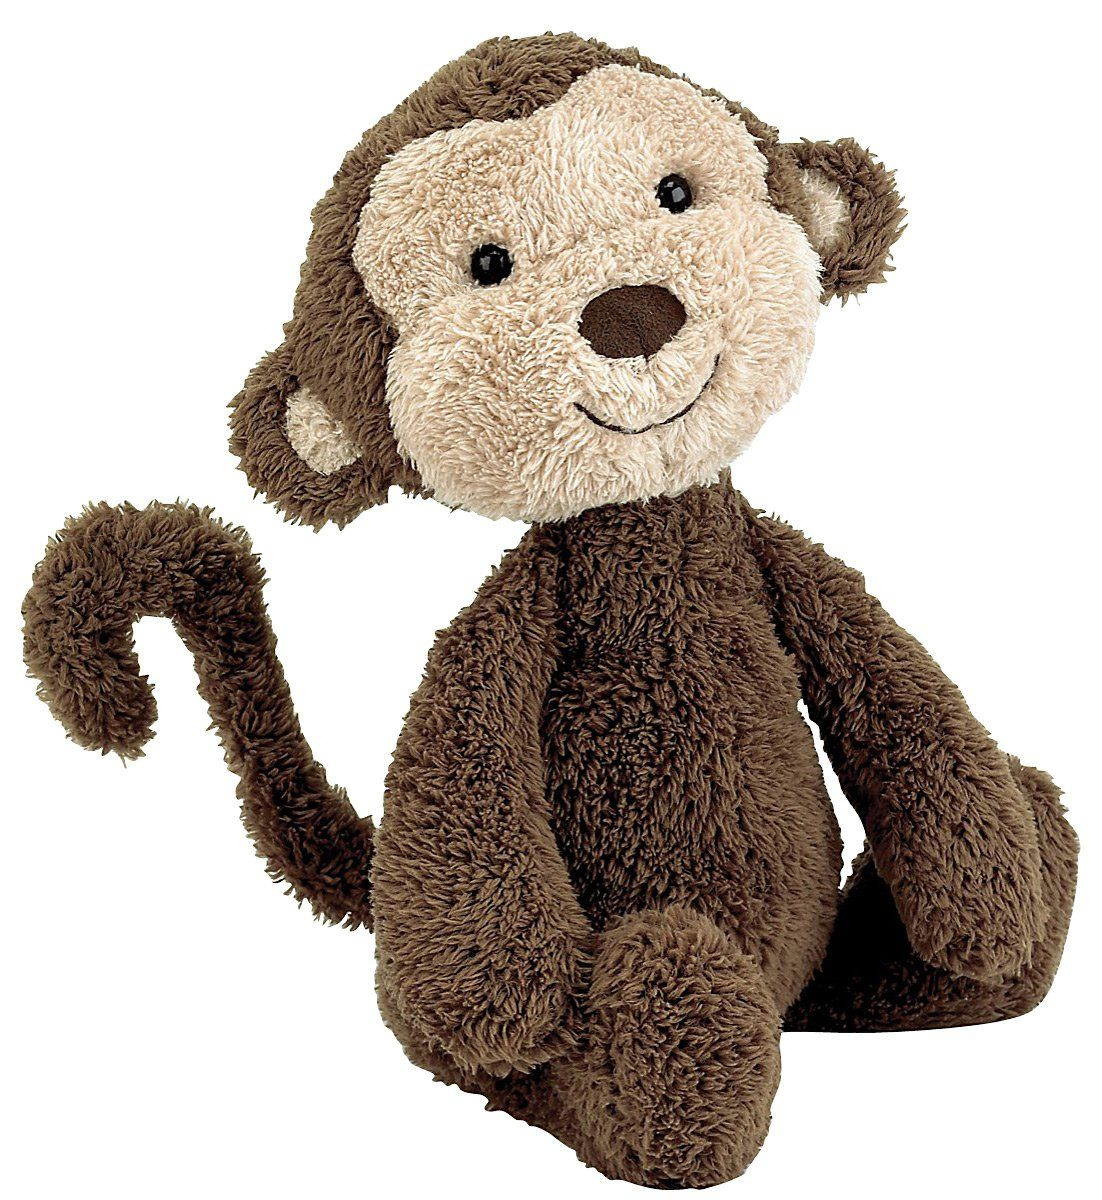 Jellycat nugget monkey! So sweet. Monkey stuffed animal